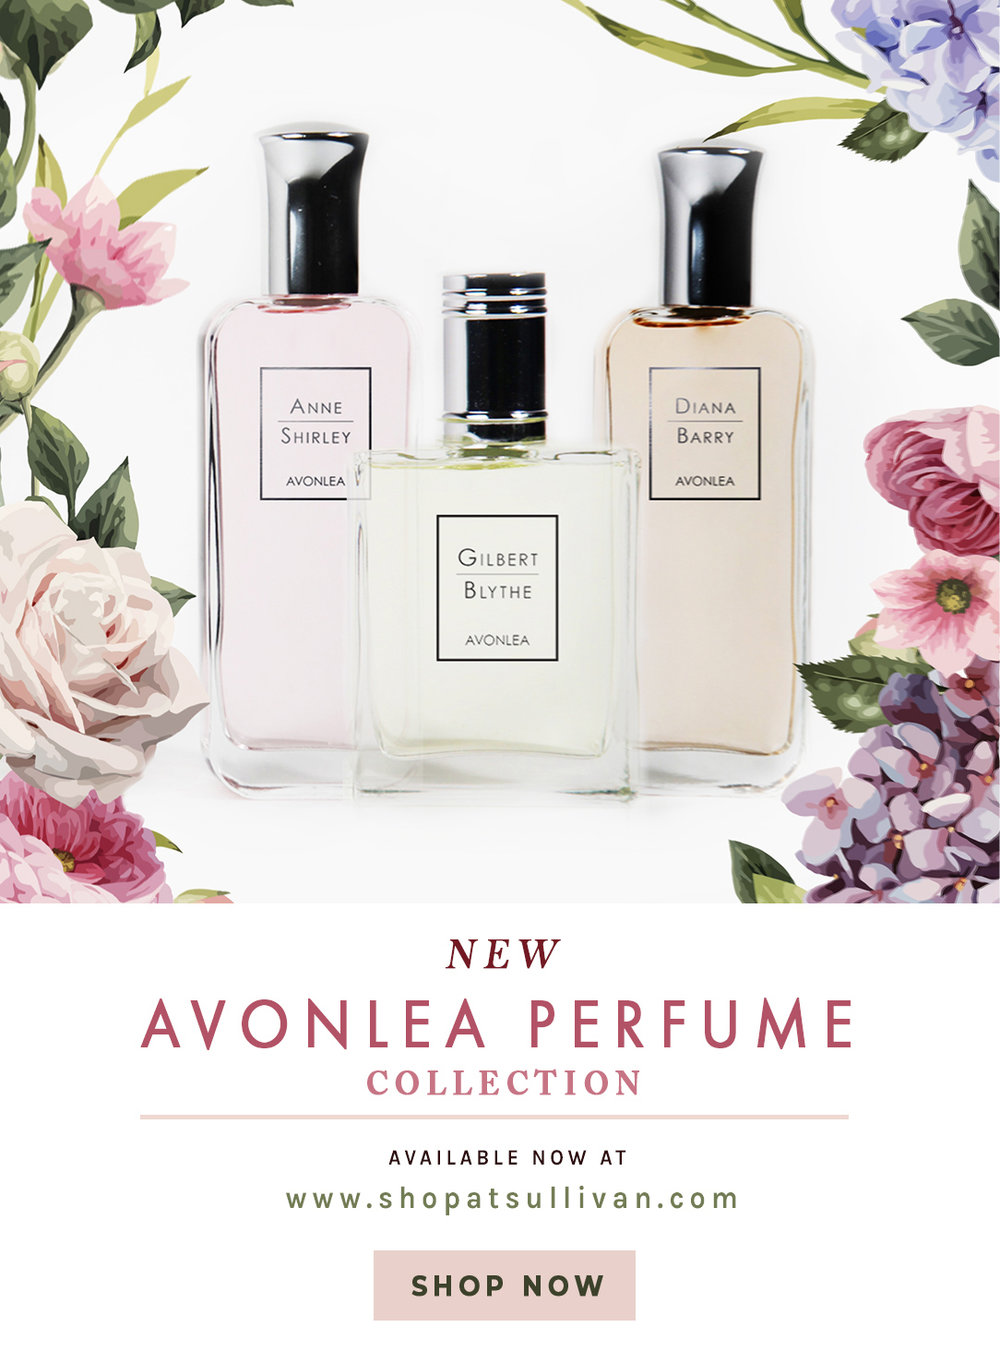 092118_Avonlea_Perfume_Collection .jpg